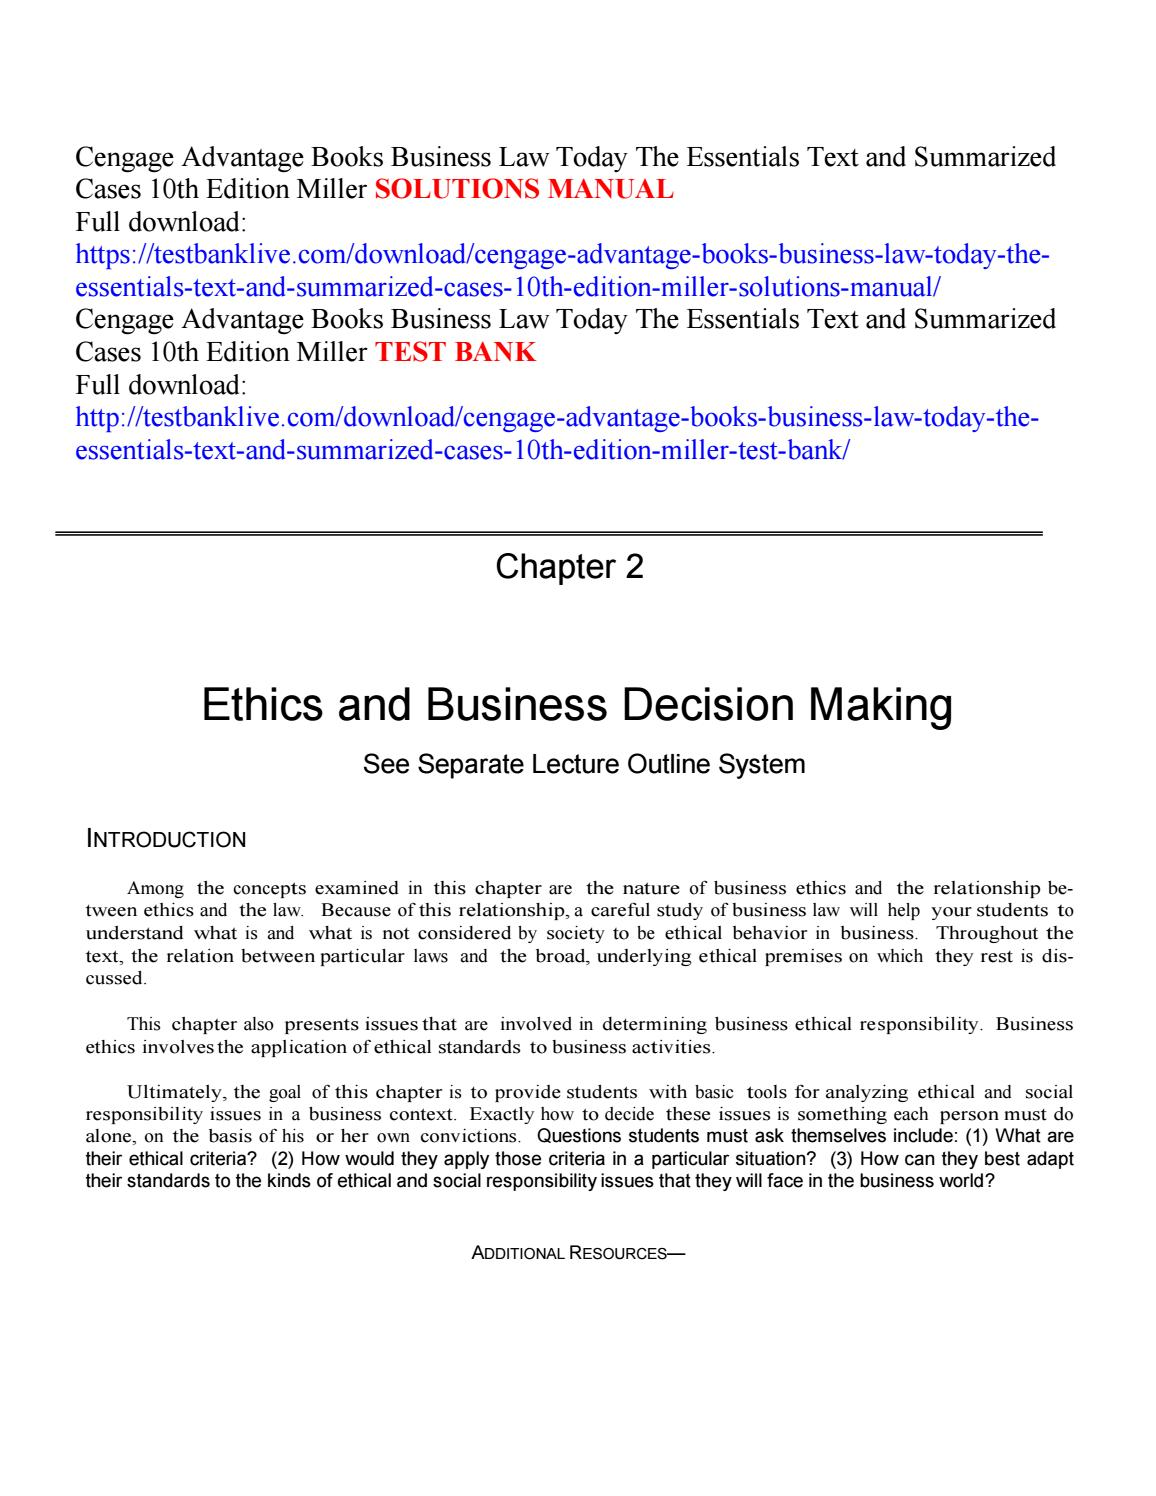 Cengage advantage books business law today the essentials text and